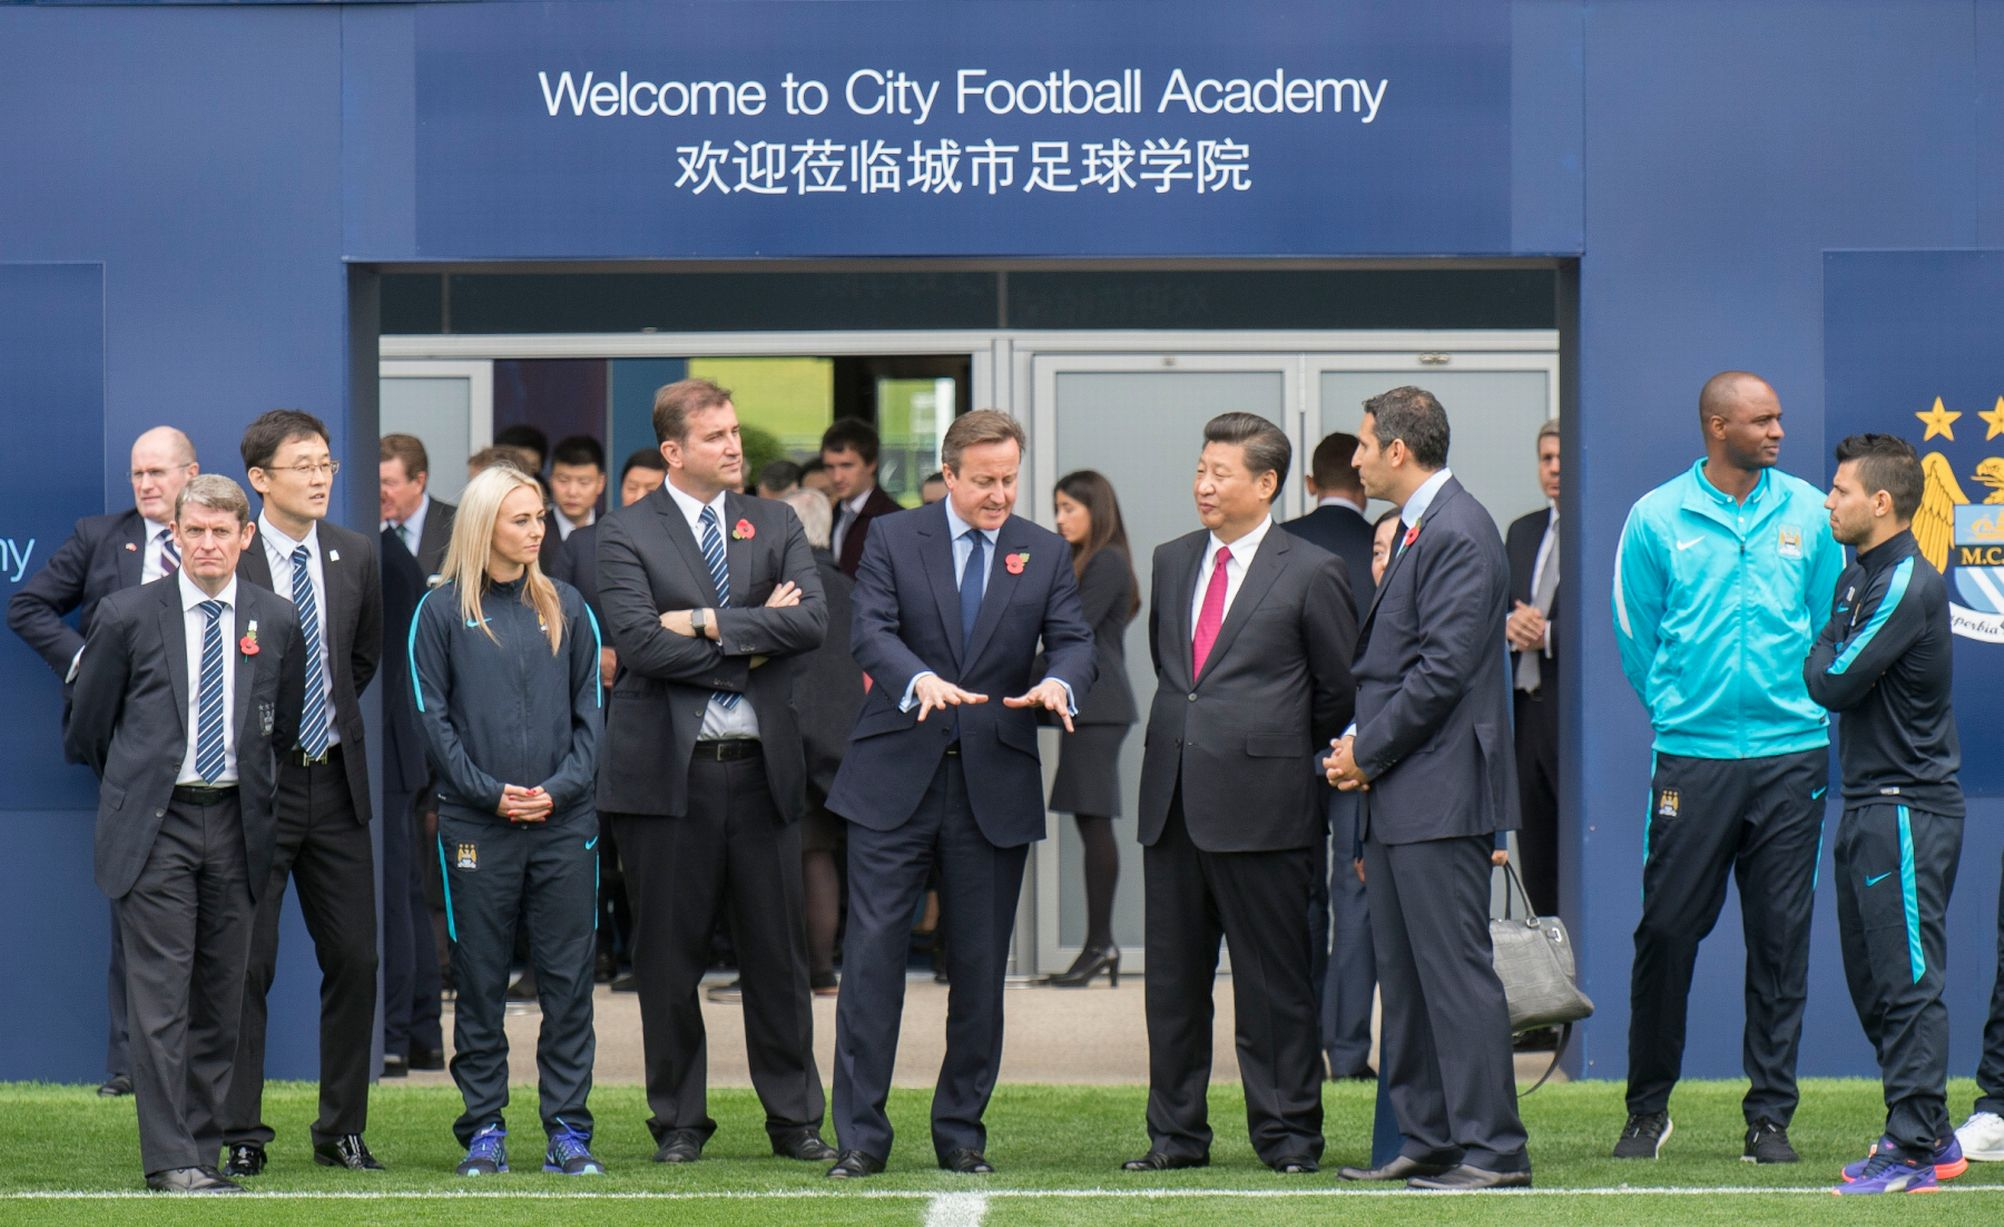 Xi Jinping tours Man City prior to CMC's investment in CFG